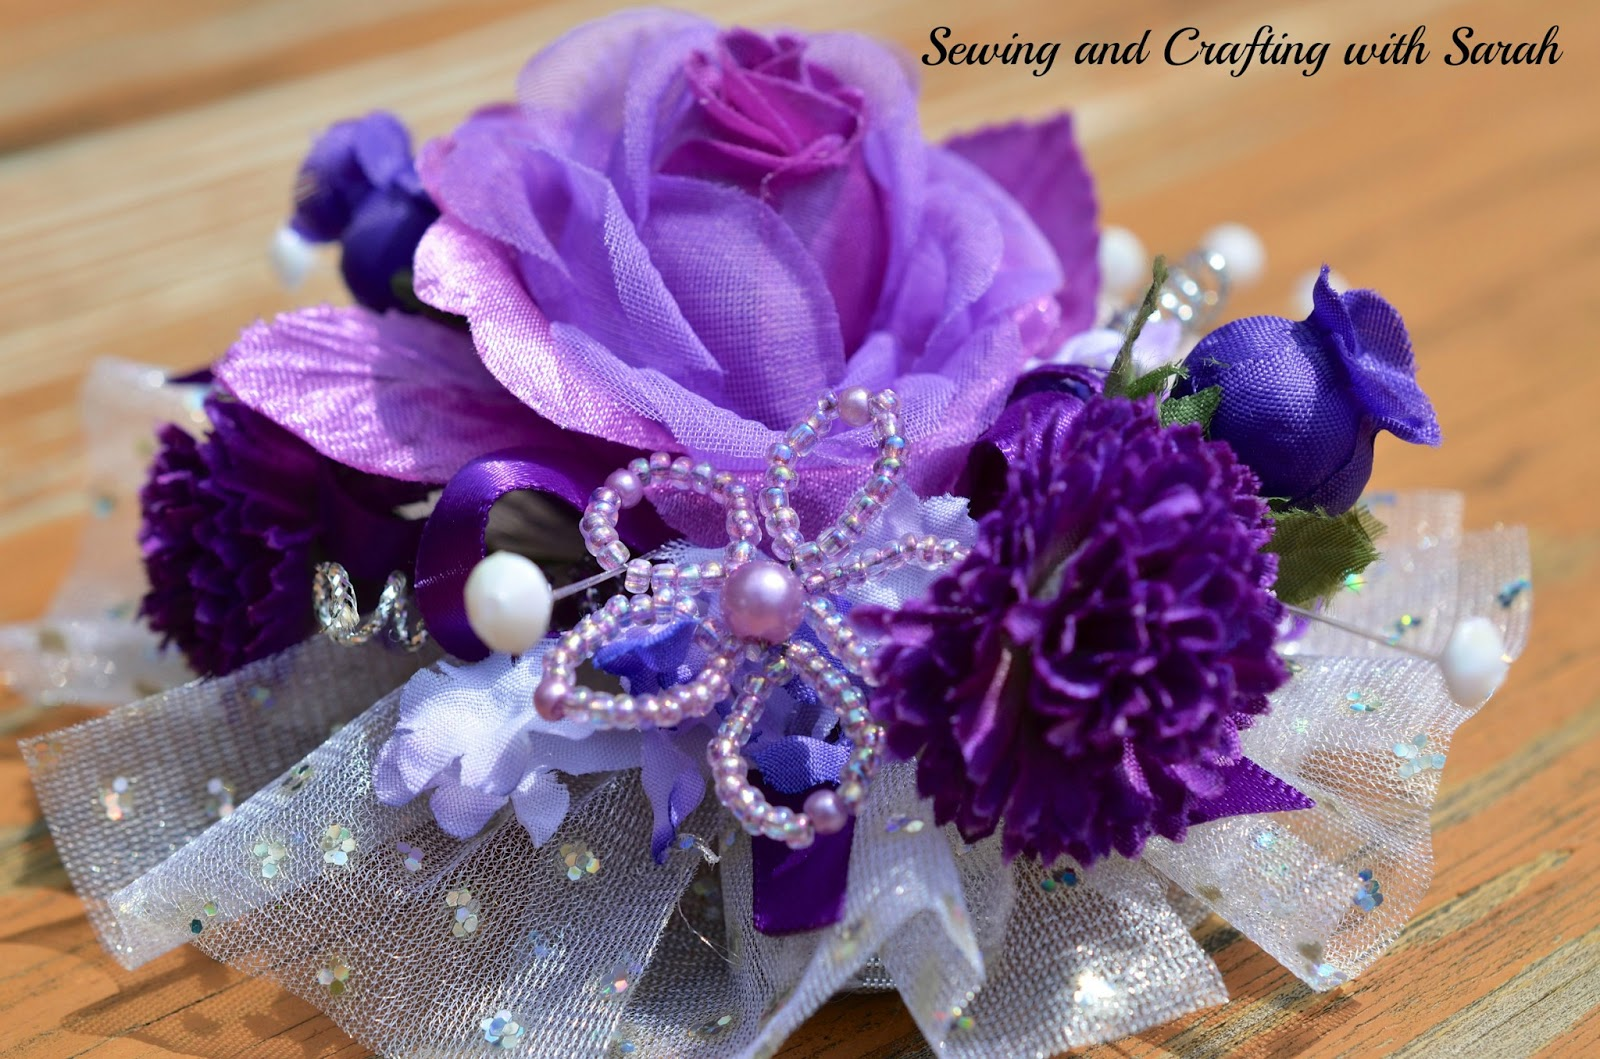 Sewing And Crafting With Sarah Design A Bowdabra Ribbon Wrist Corsage